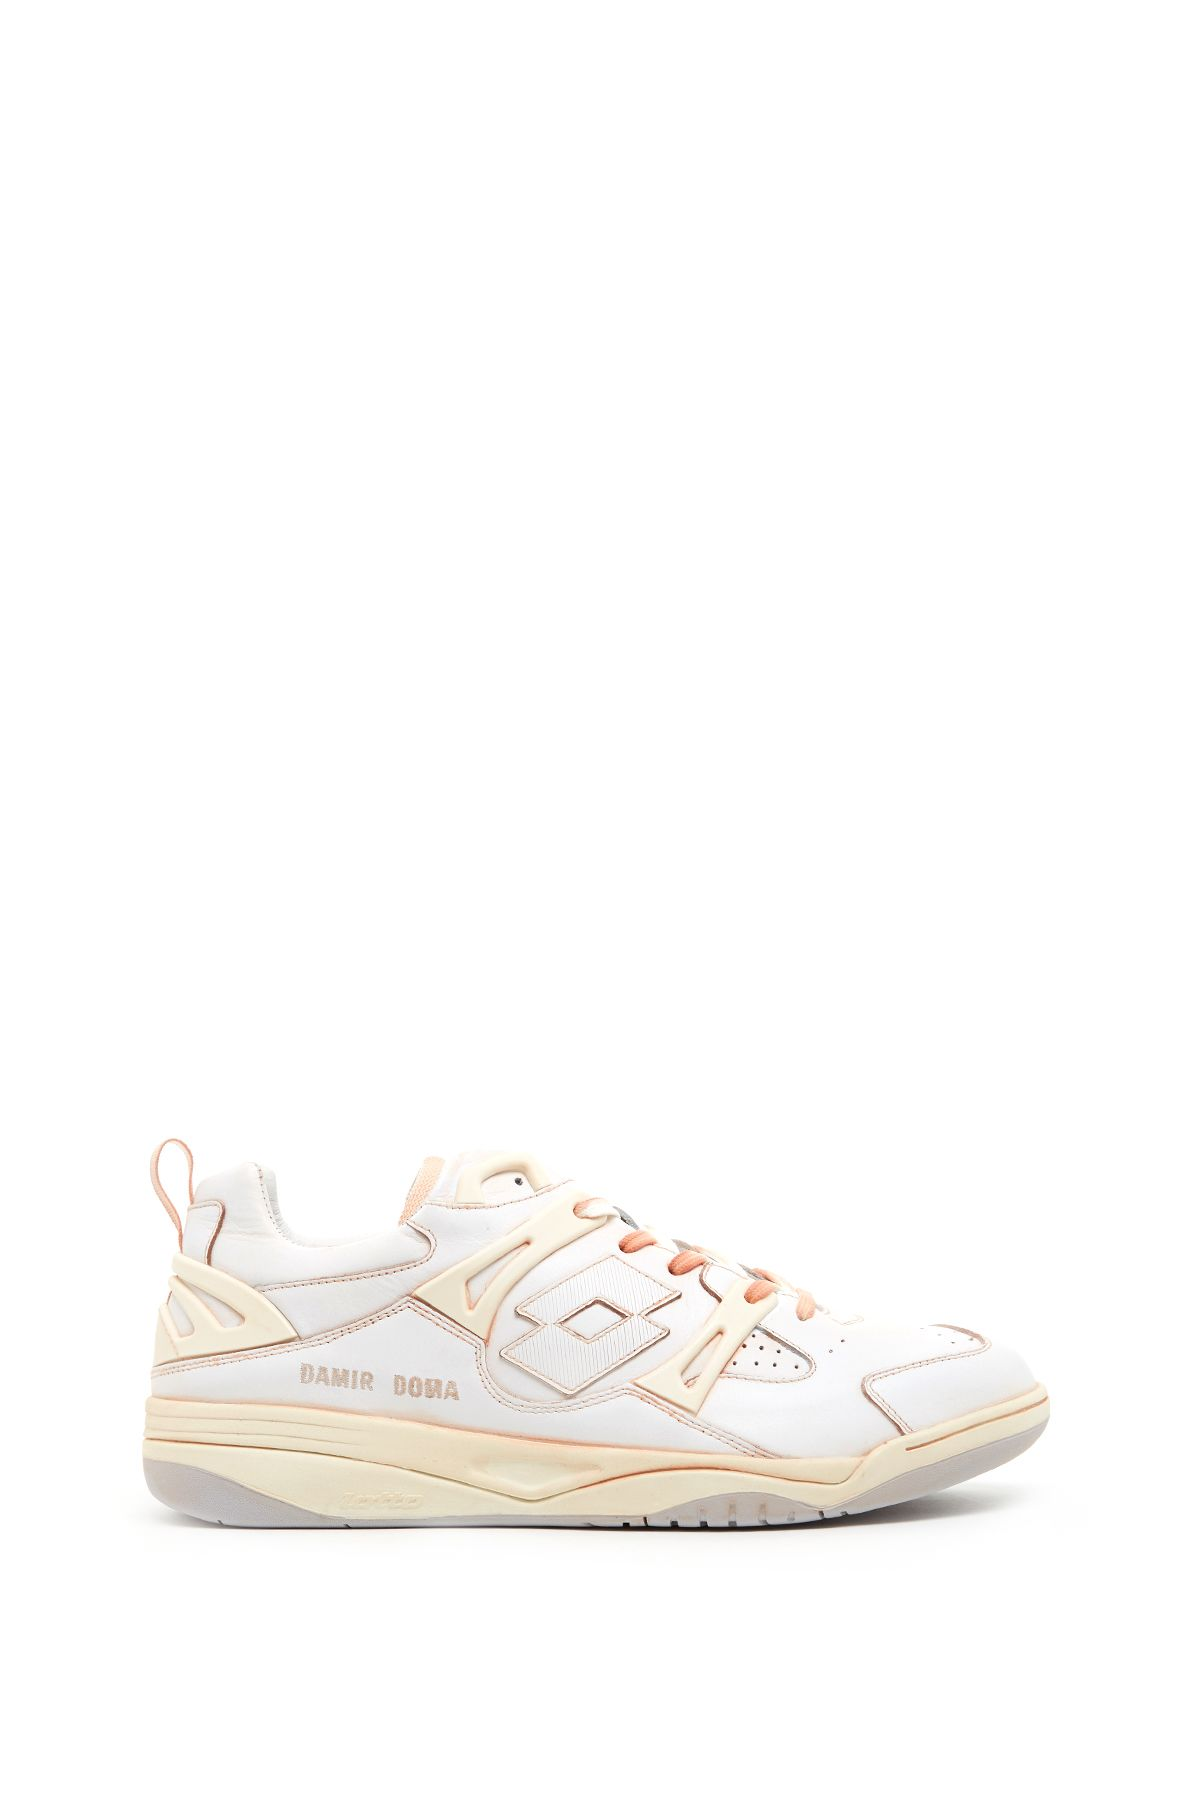 DAMIR DOMA - LOTTO Damir Doma / Lotto Flor L Shoes in White